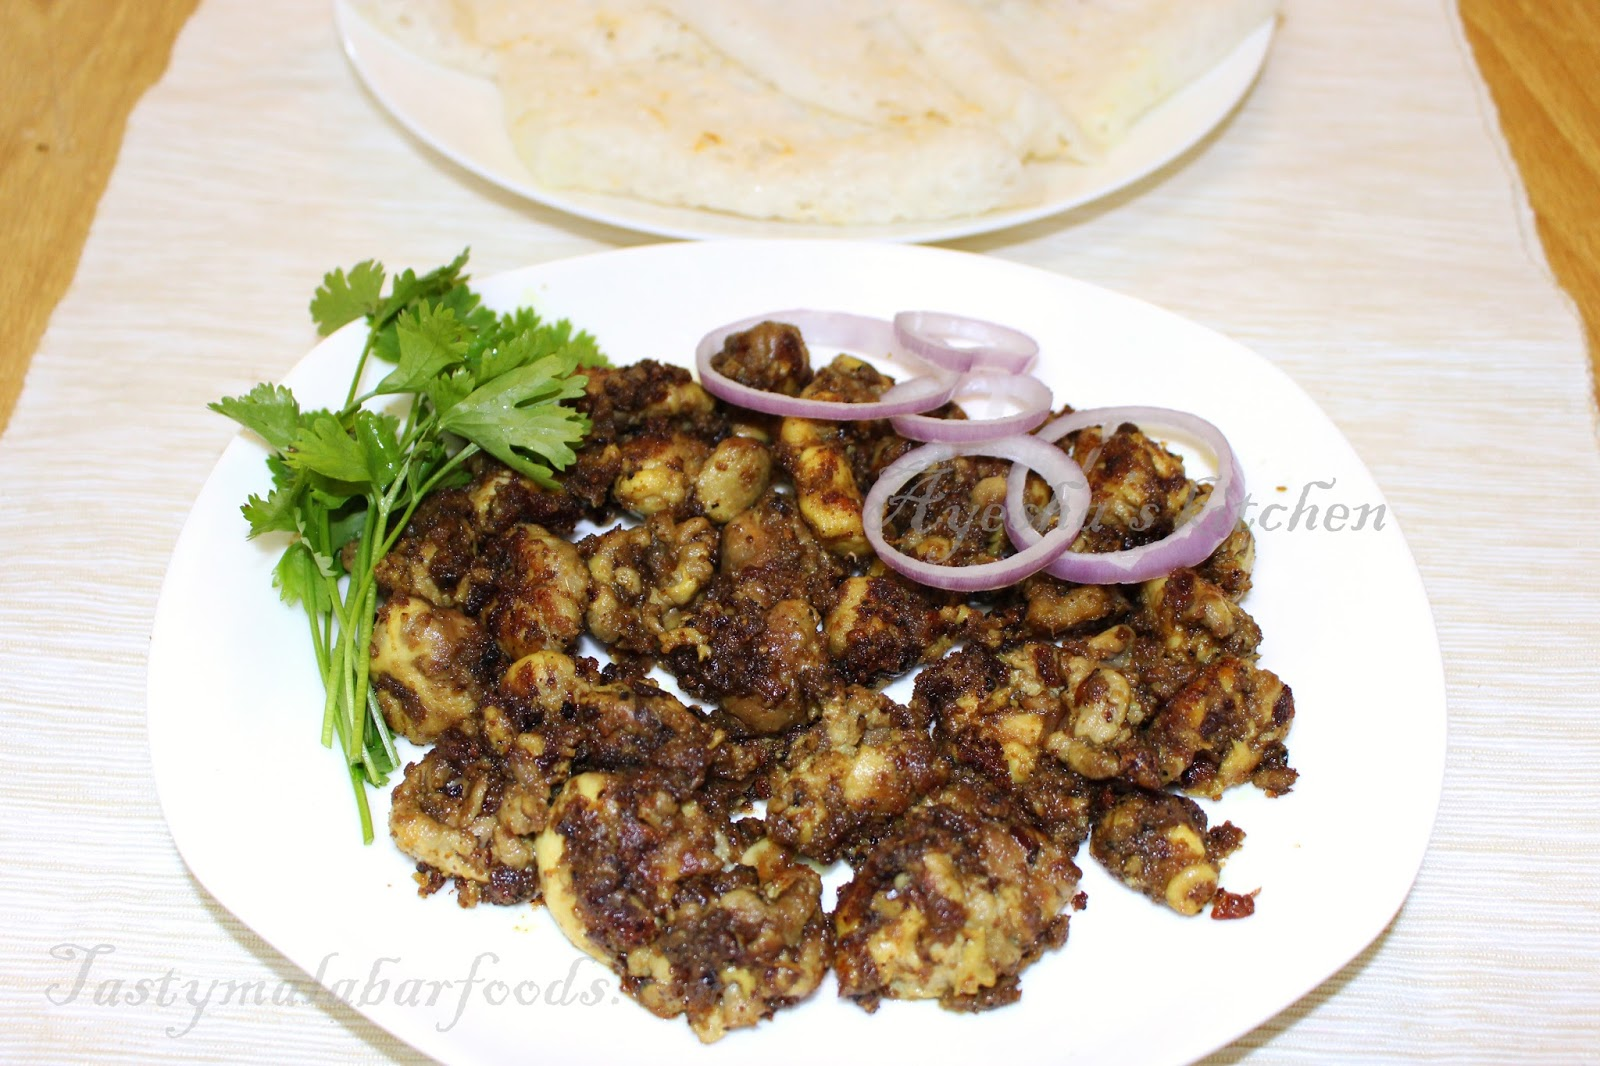 Mutton lamb brain fry traditional indian recipe lamb recipes brain fry thalachor varattiyath porichathu varuthath malabar recipes forumfinder